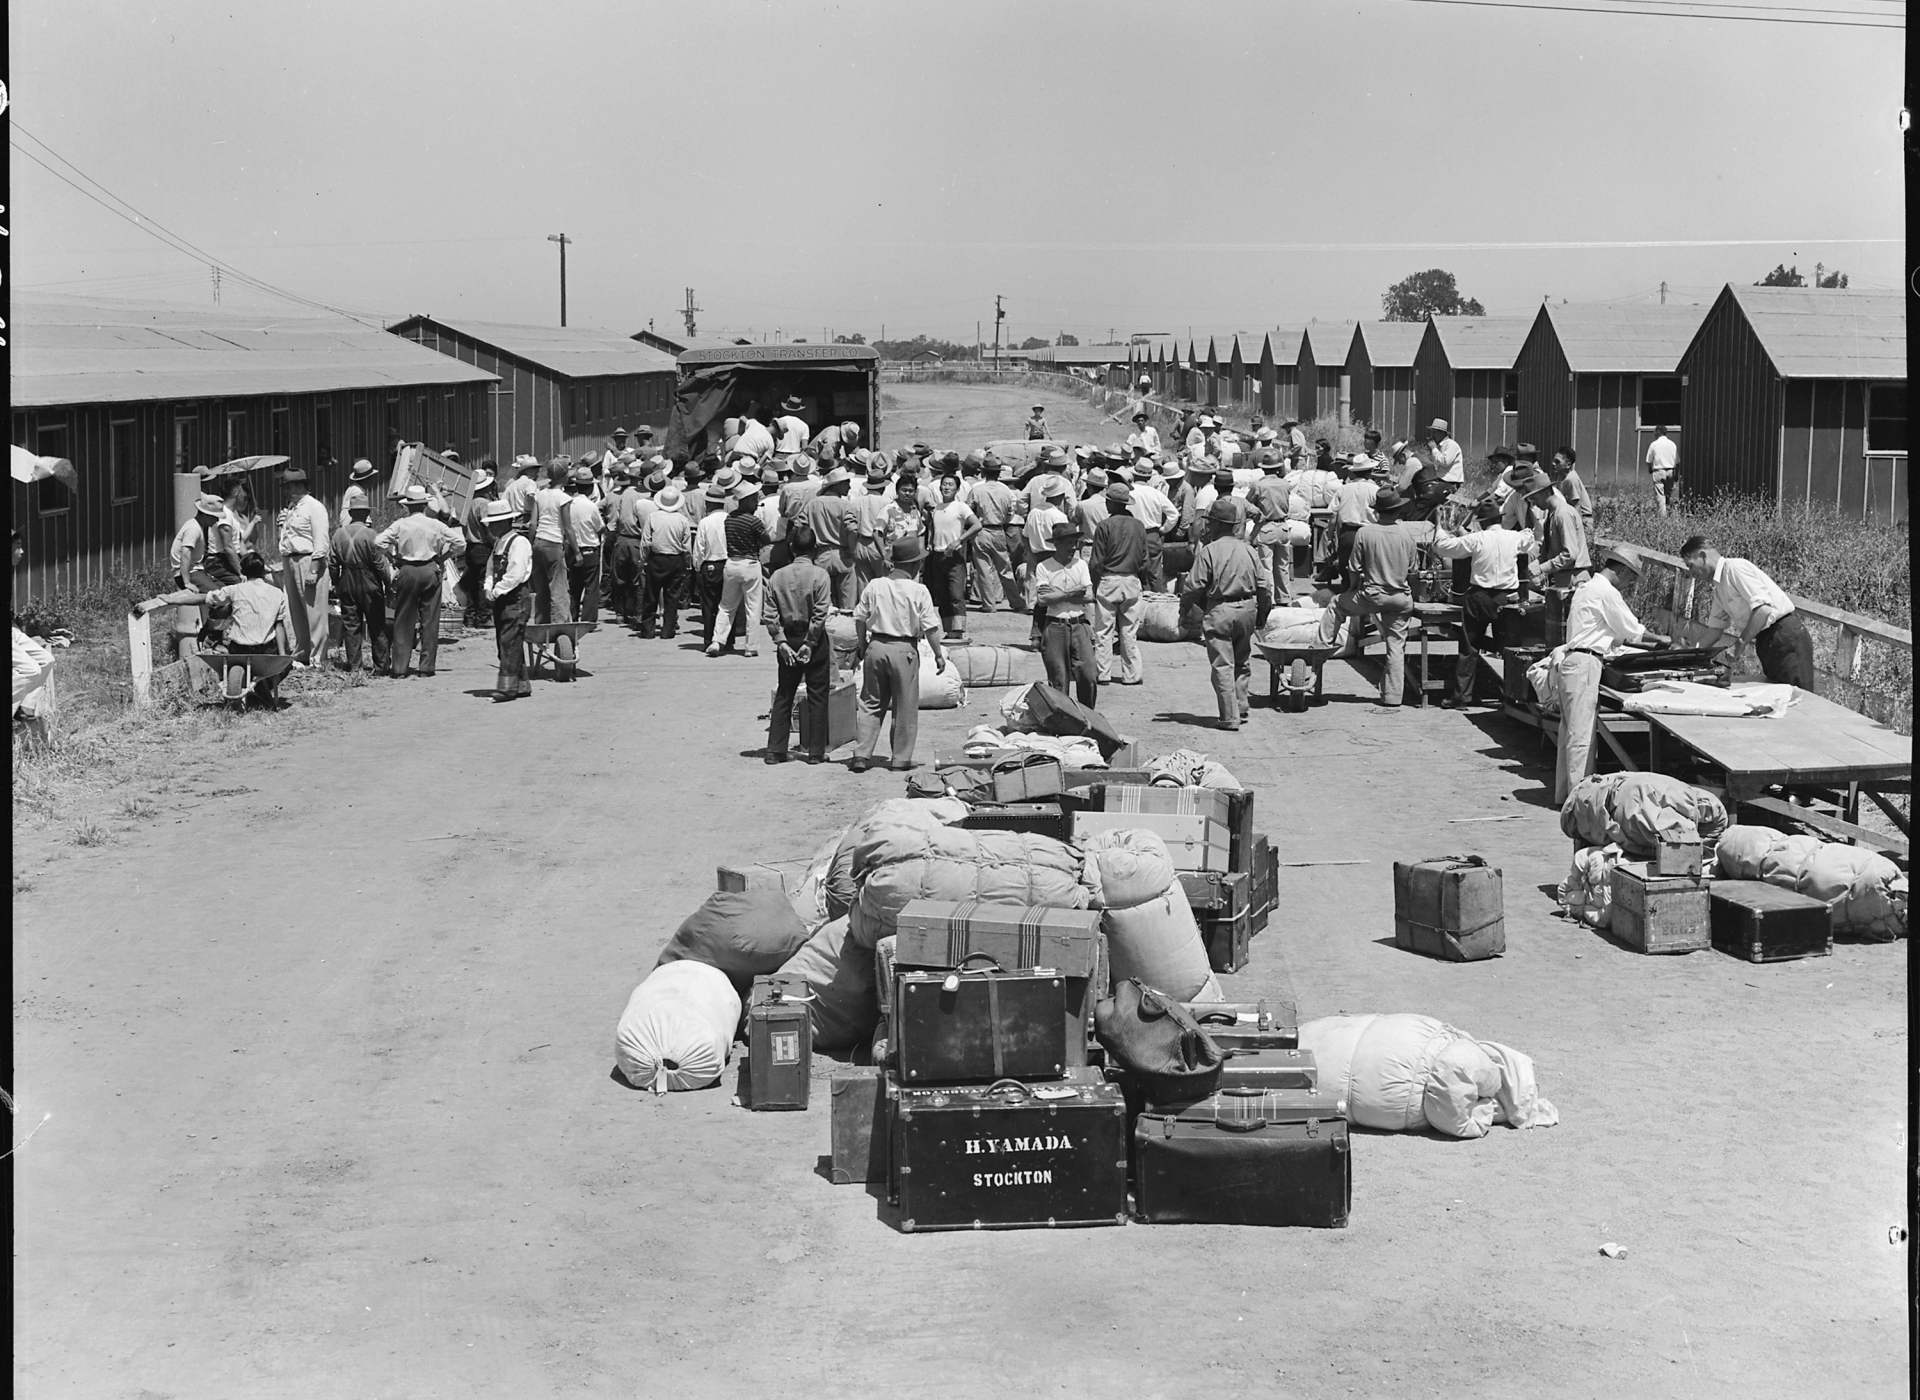 Japanese Americans arriving at an assembly center near Stockton, California. Their possessions are piled outside awaiting inspection before being transferred to the barracks (1942).